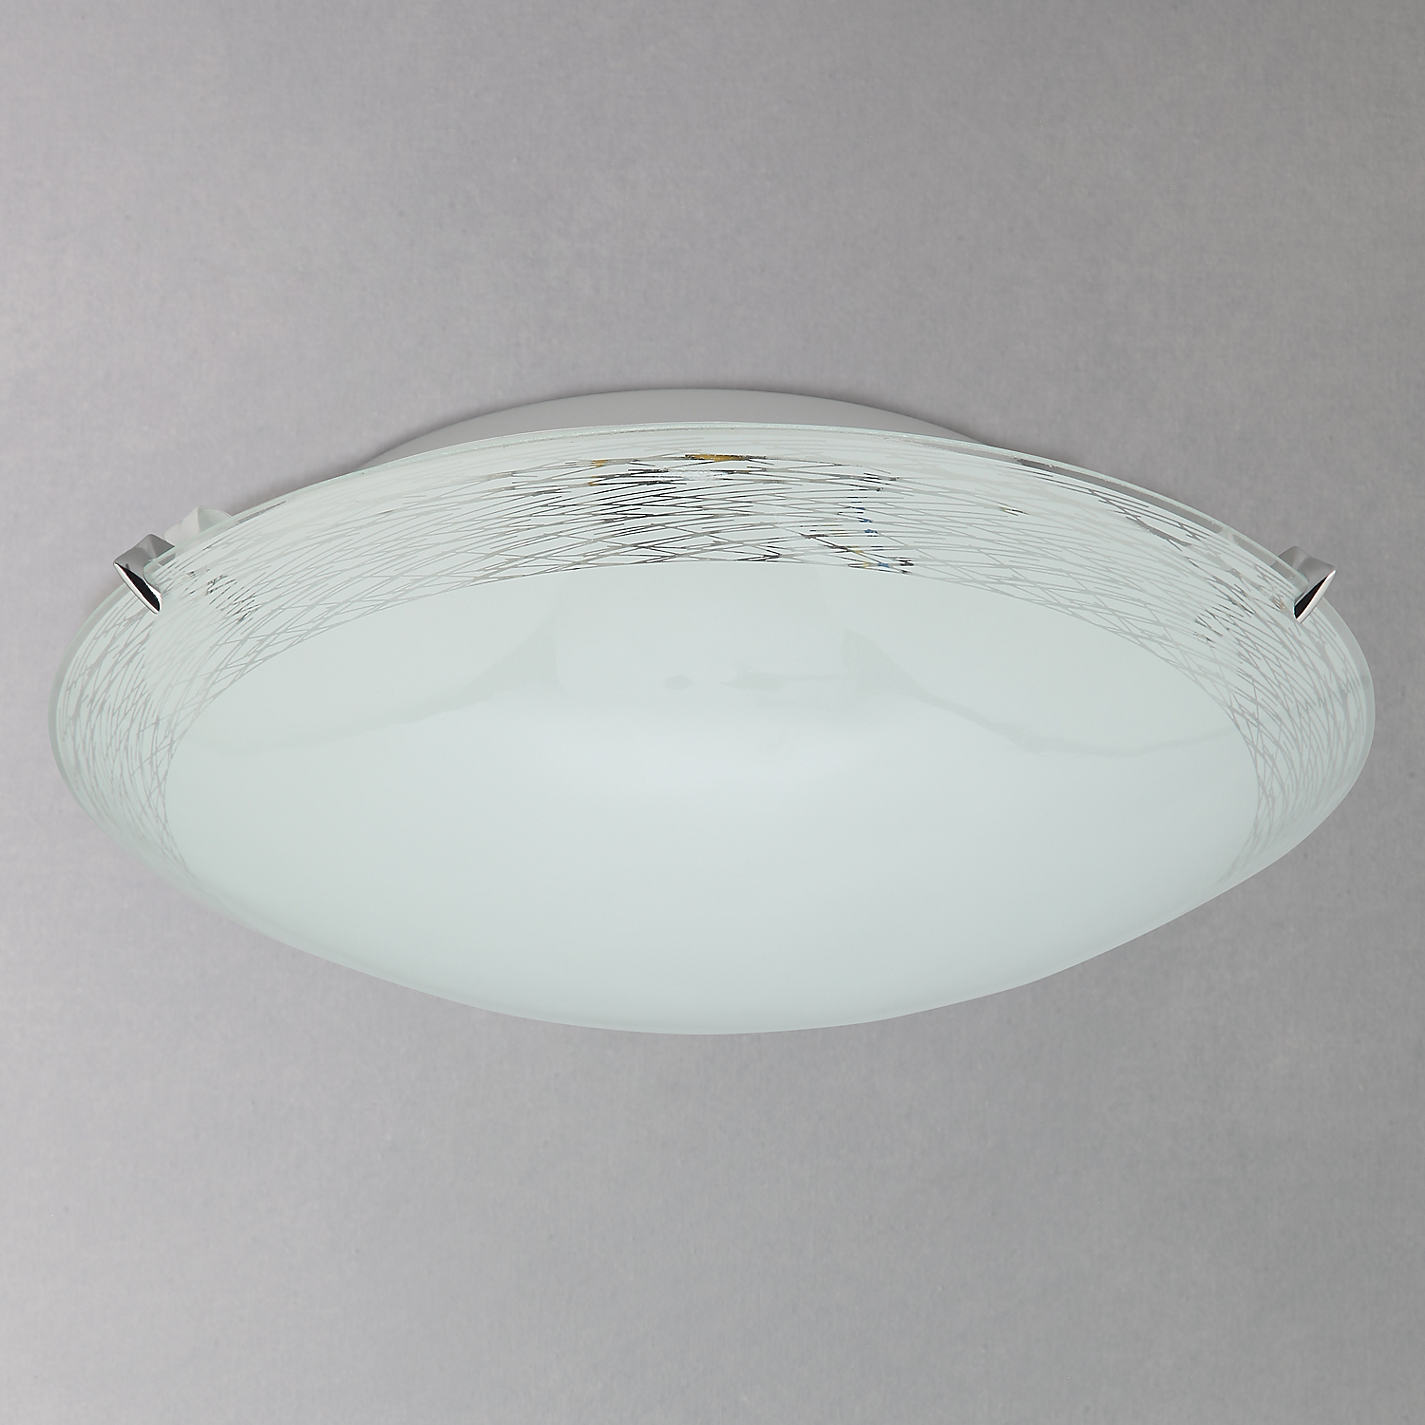 Bathroom Light Fixtures John Lewis flush ceiling lighting. flush ceiling lights ceiling lights ocean